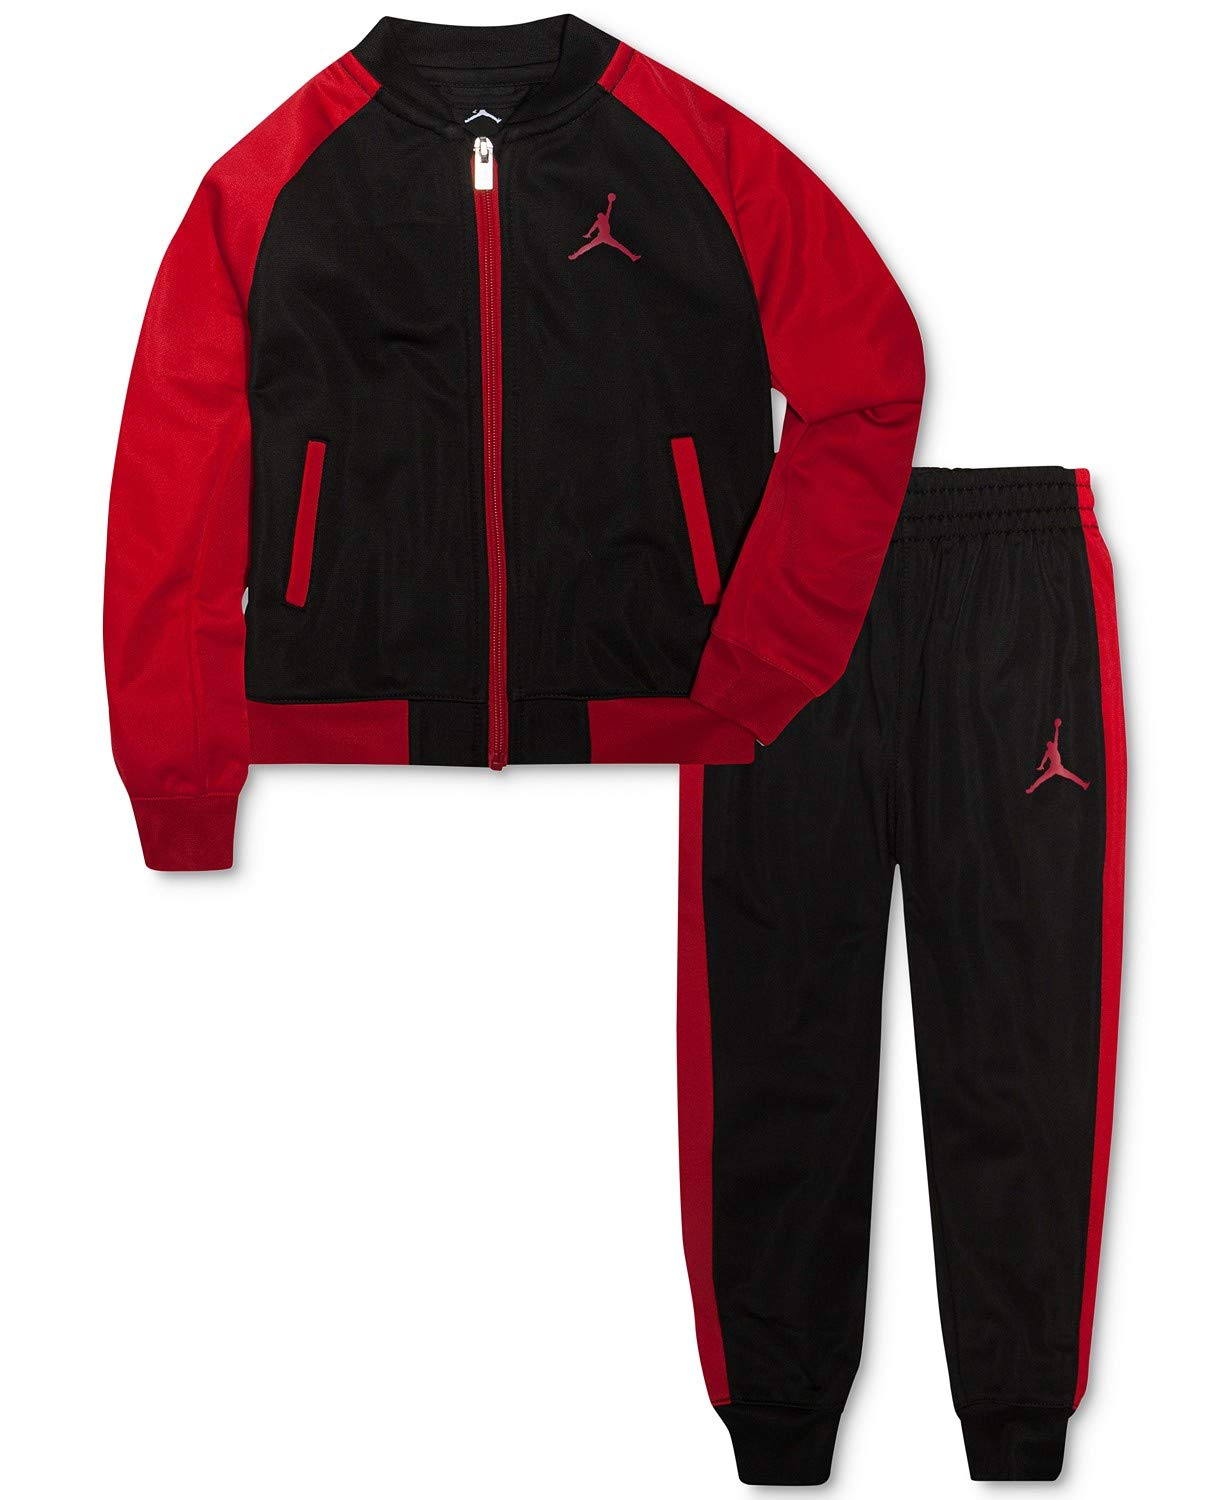 NIKE Air Jordan Boys Tricot Tracksuit Jacket & Pants Set, Black/Red (5) by Jordan